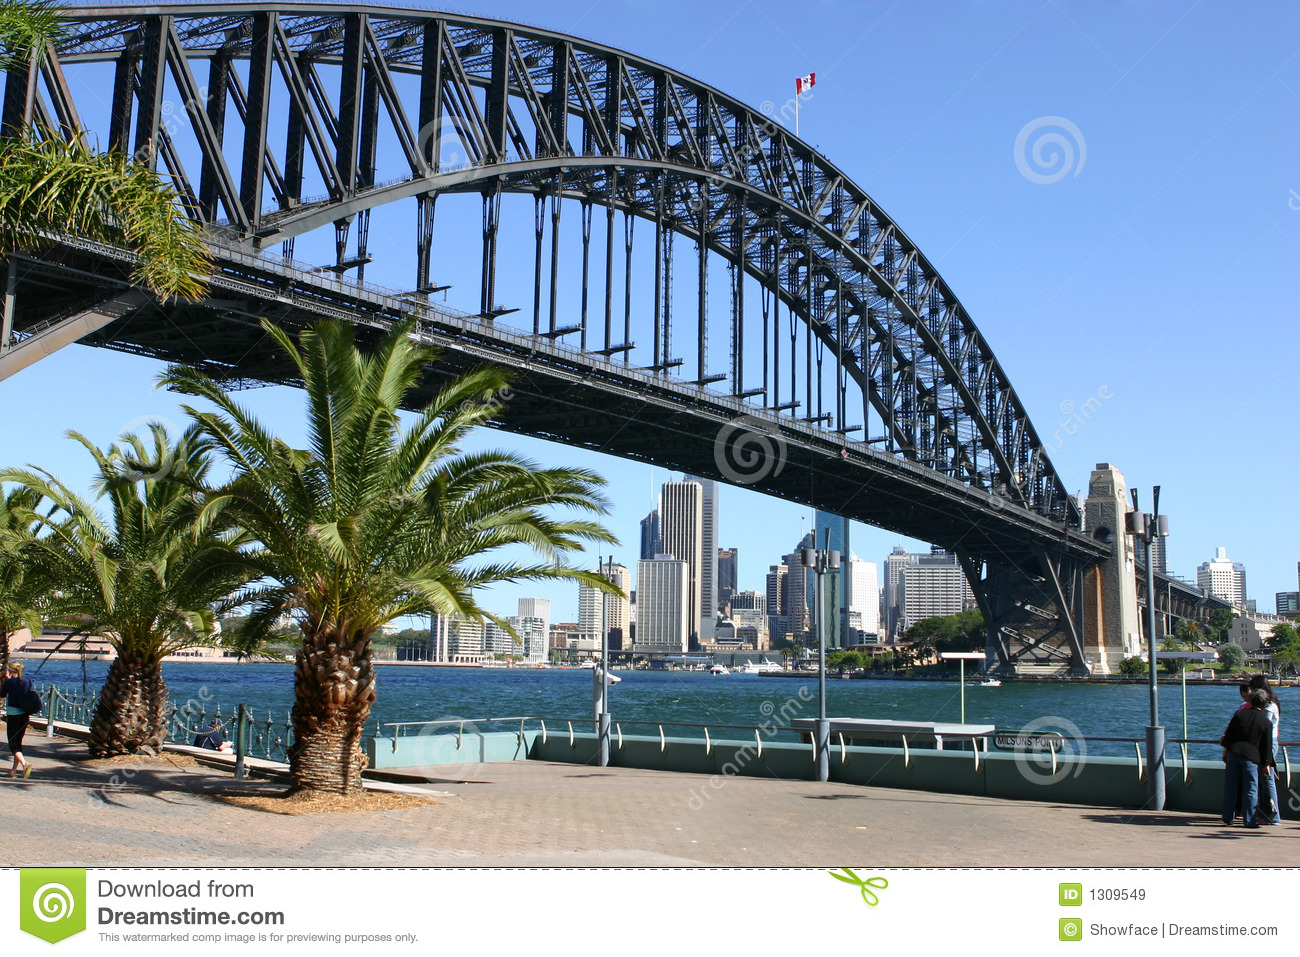 Download Sydney Harbour And Sydney Harbour Bridge Stock Image - Image of architecture, bridge: 1309549